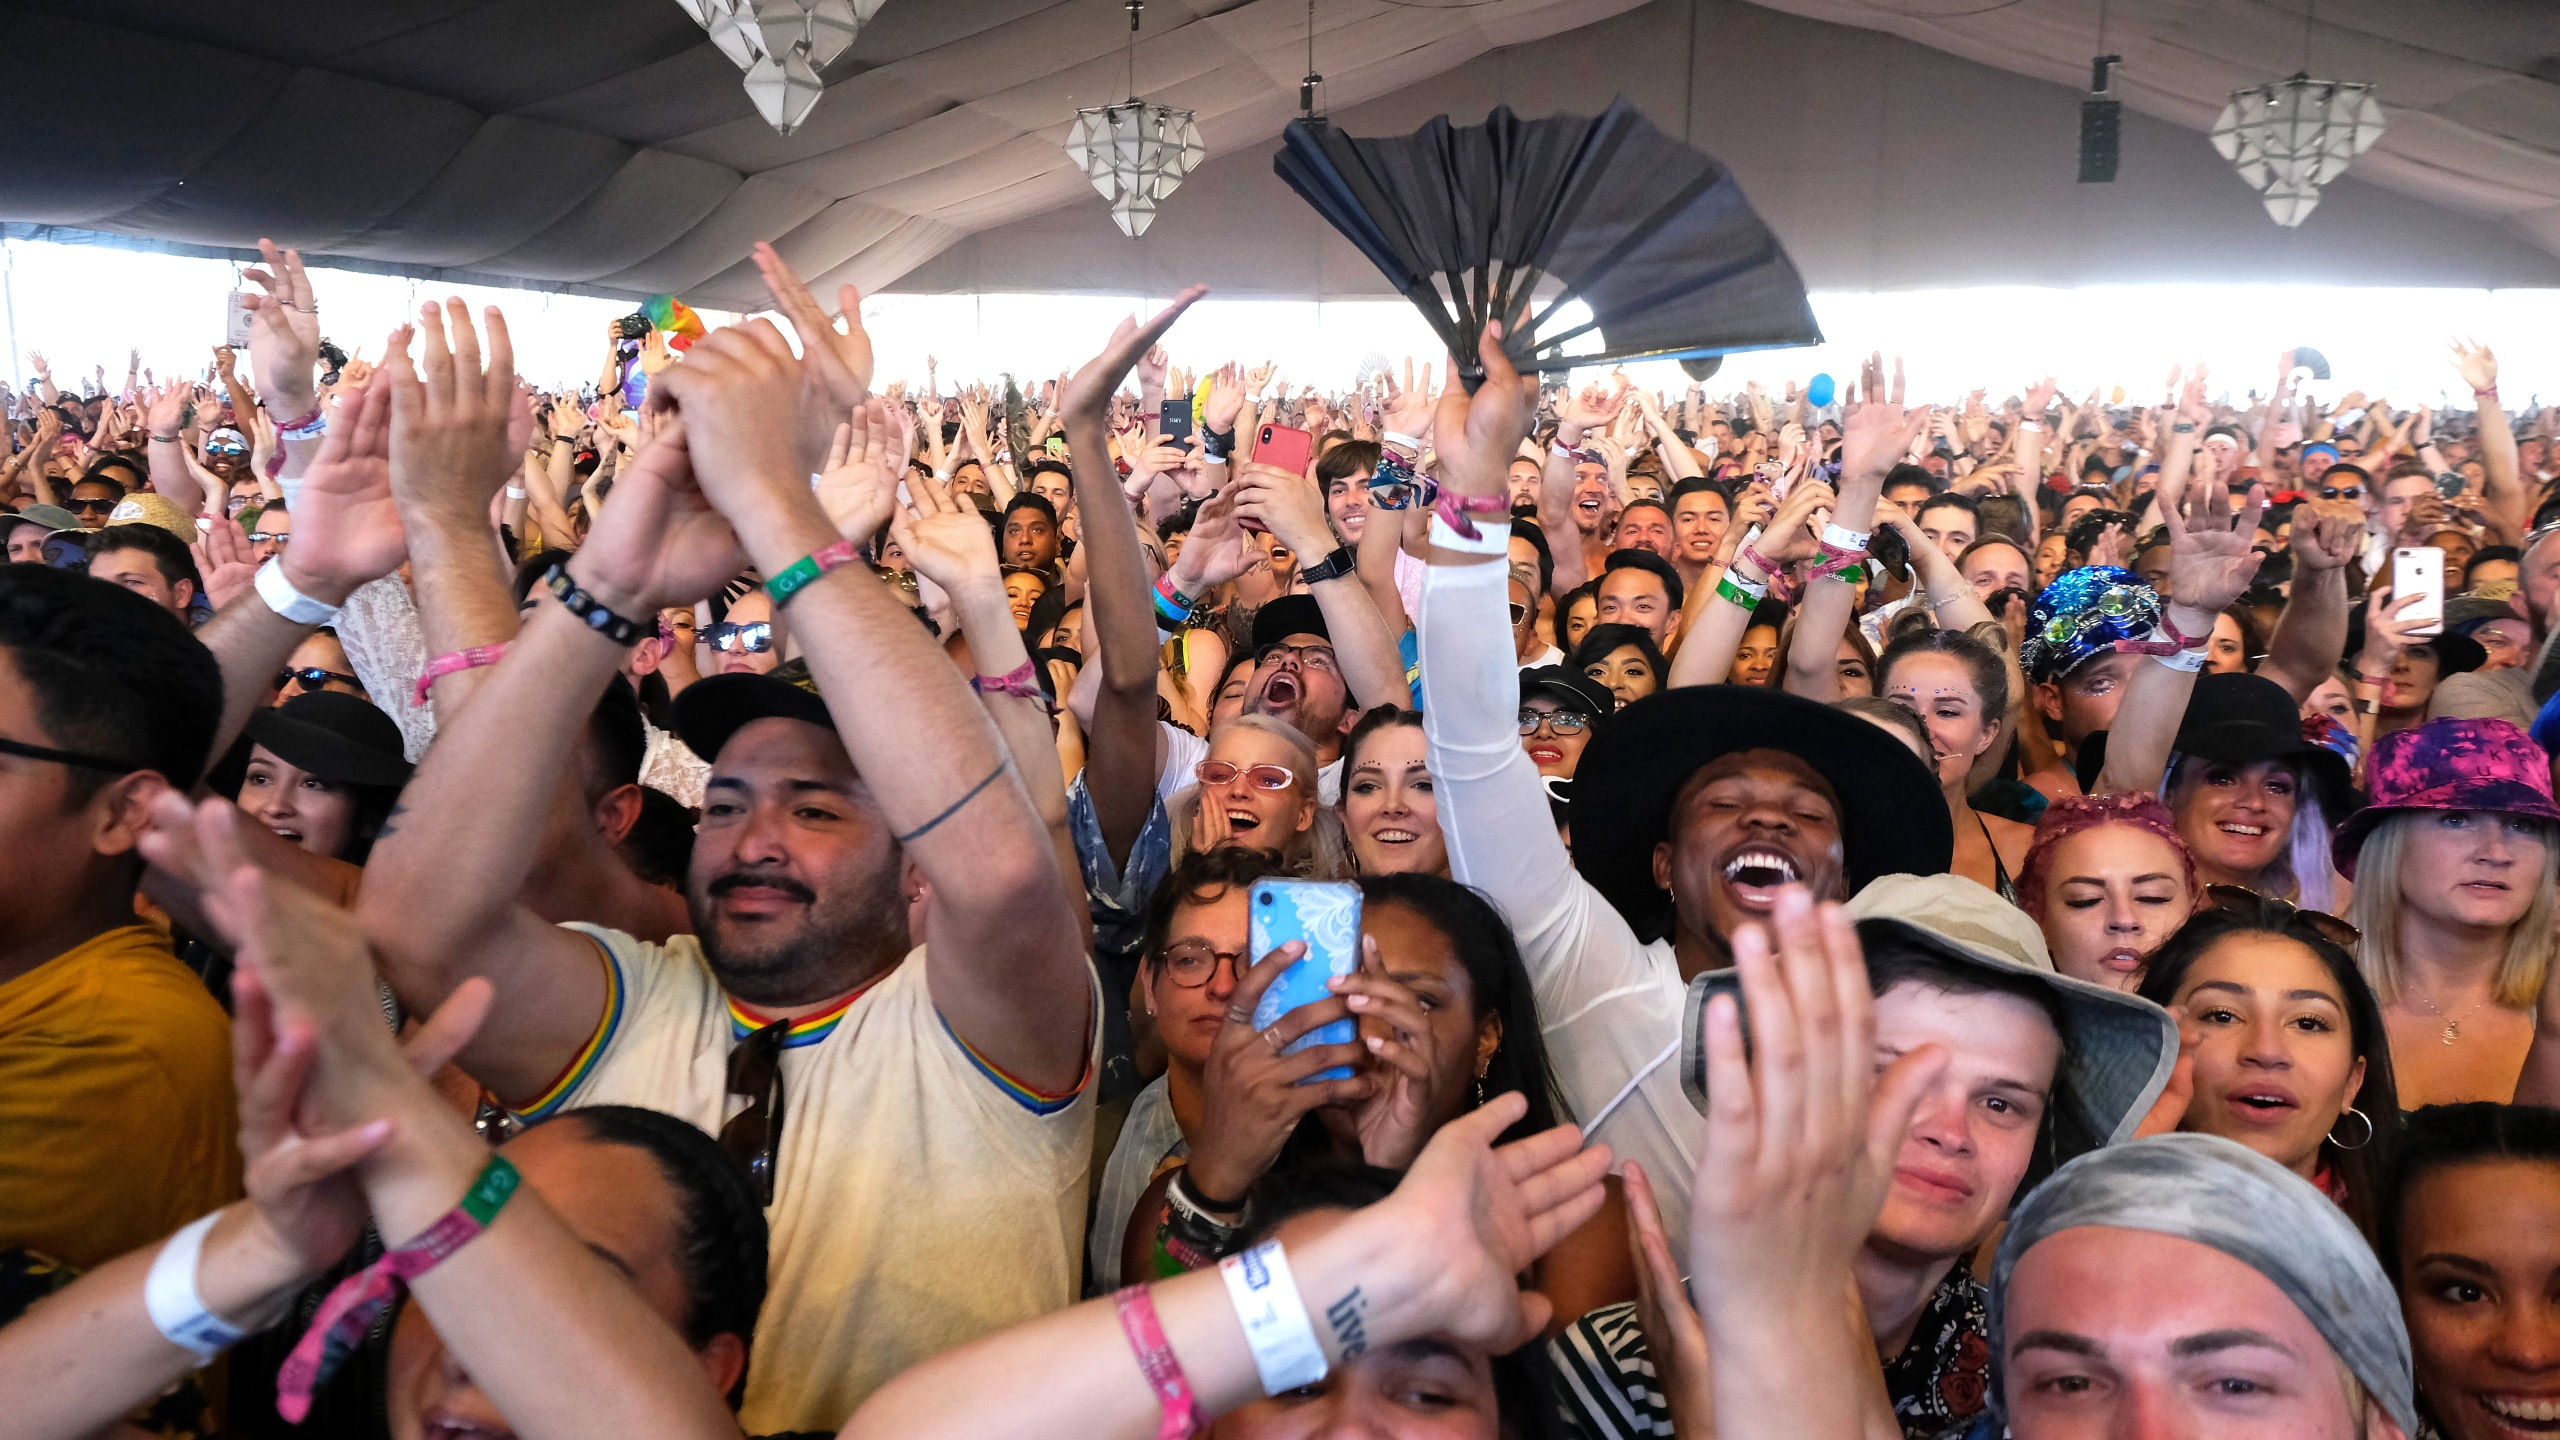 Festivalgoers watch Lizzo perform at Mojave Tent during the 2019 Coachella Valley Music And Arts Festival on April 21, 2019 in Indio. (Credit: Frazer Harrison/Getty Images)